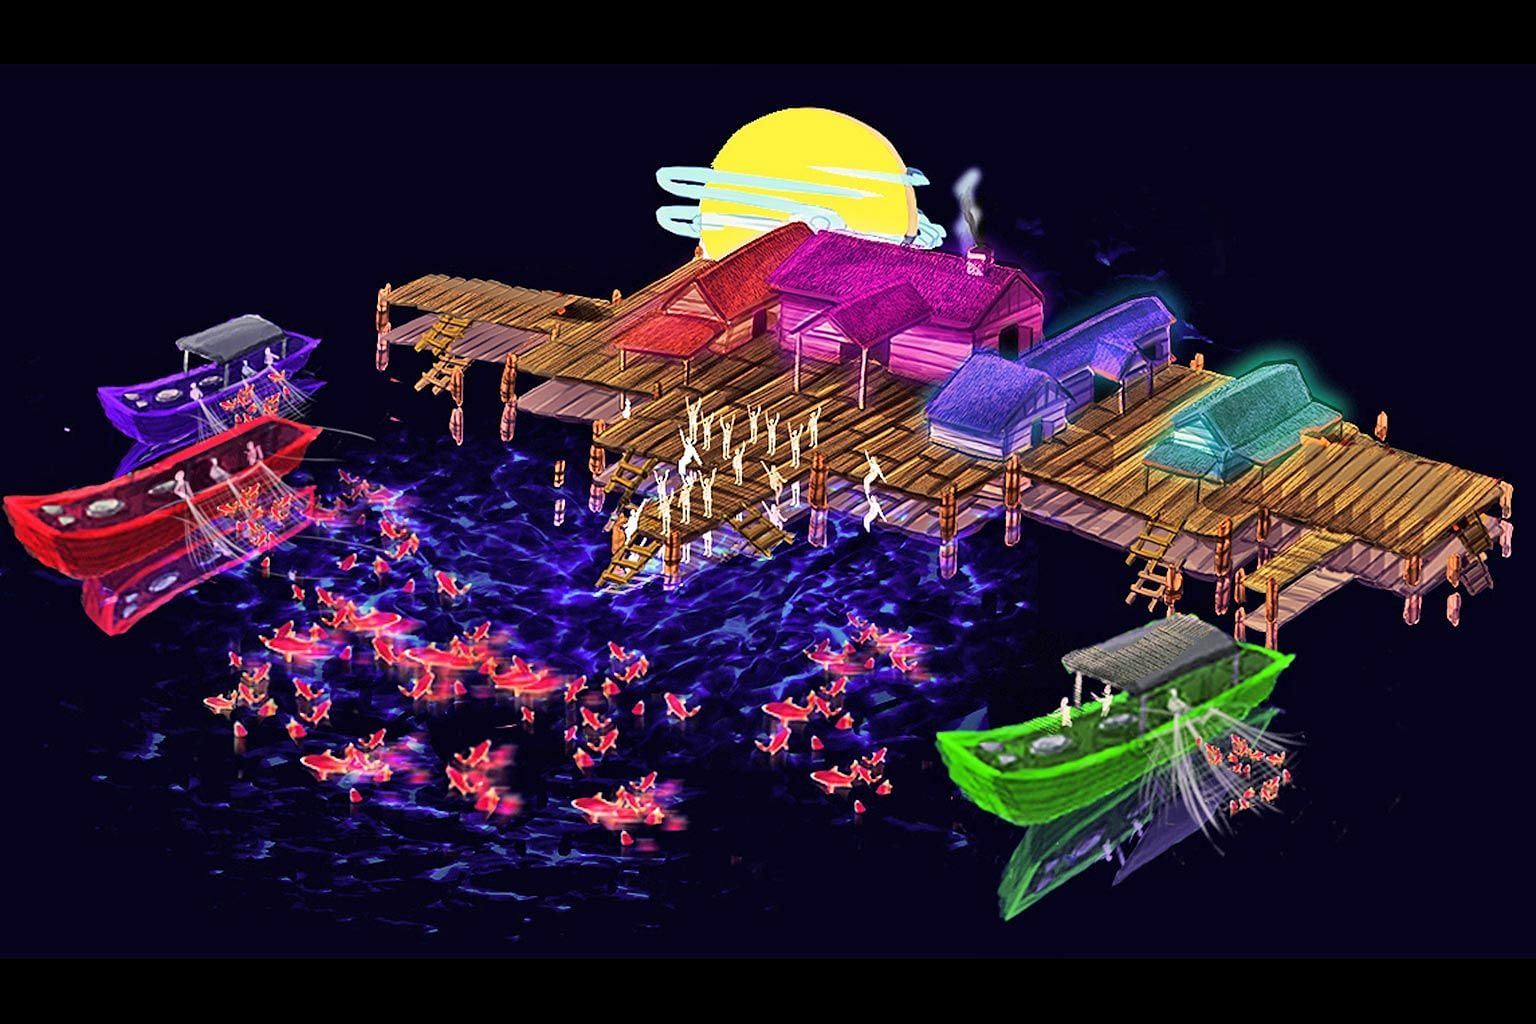 Artist's impression of the largest display, the Waters of Prosperity lantern set which depicts a fishing village.